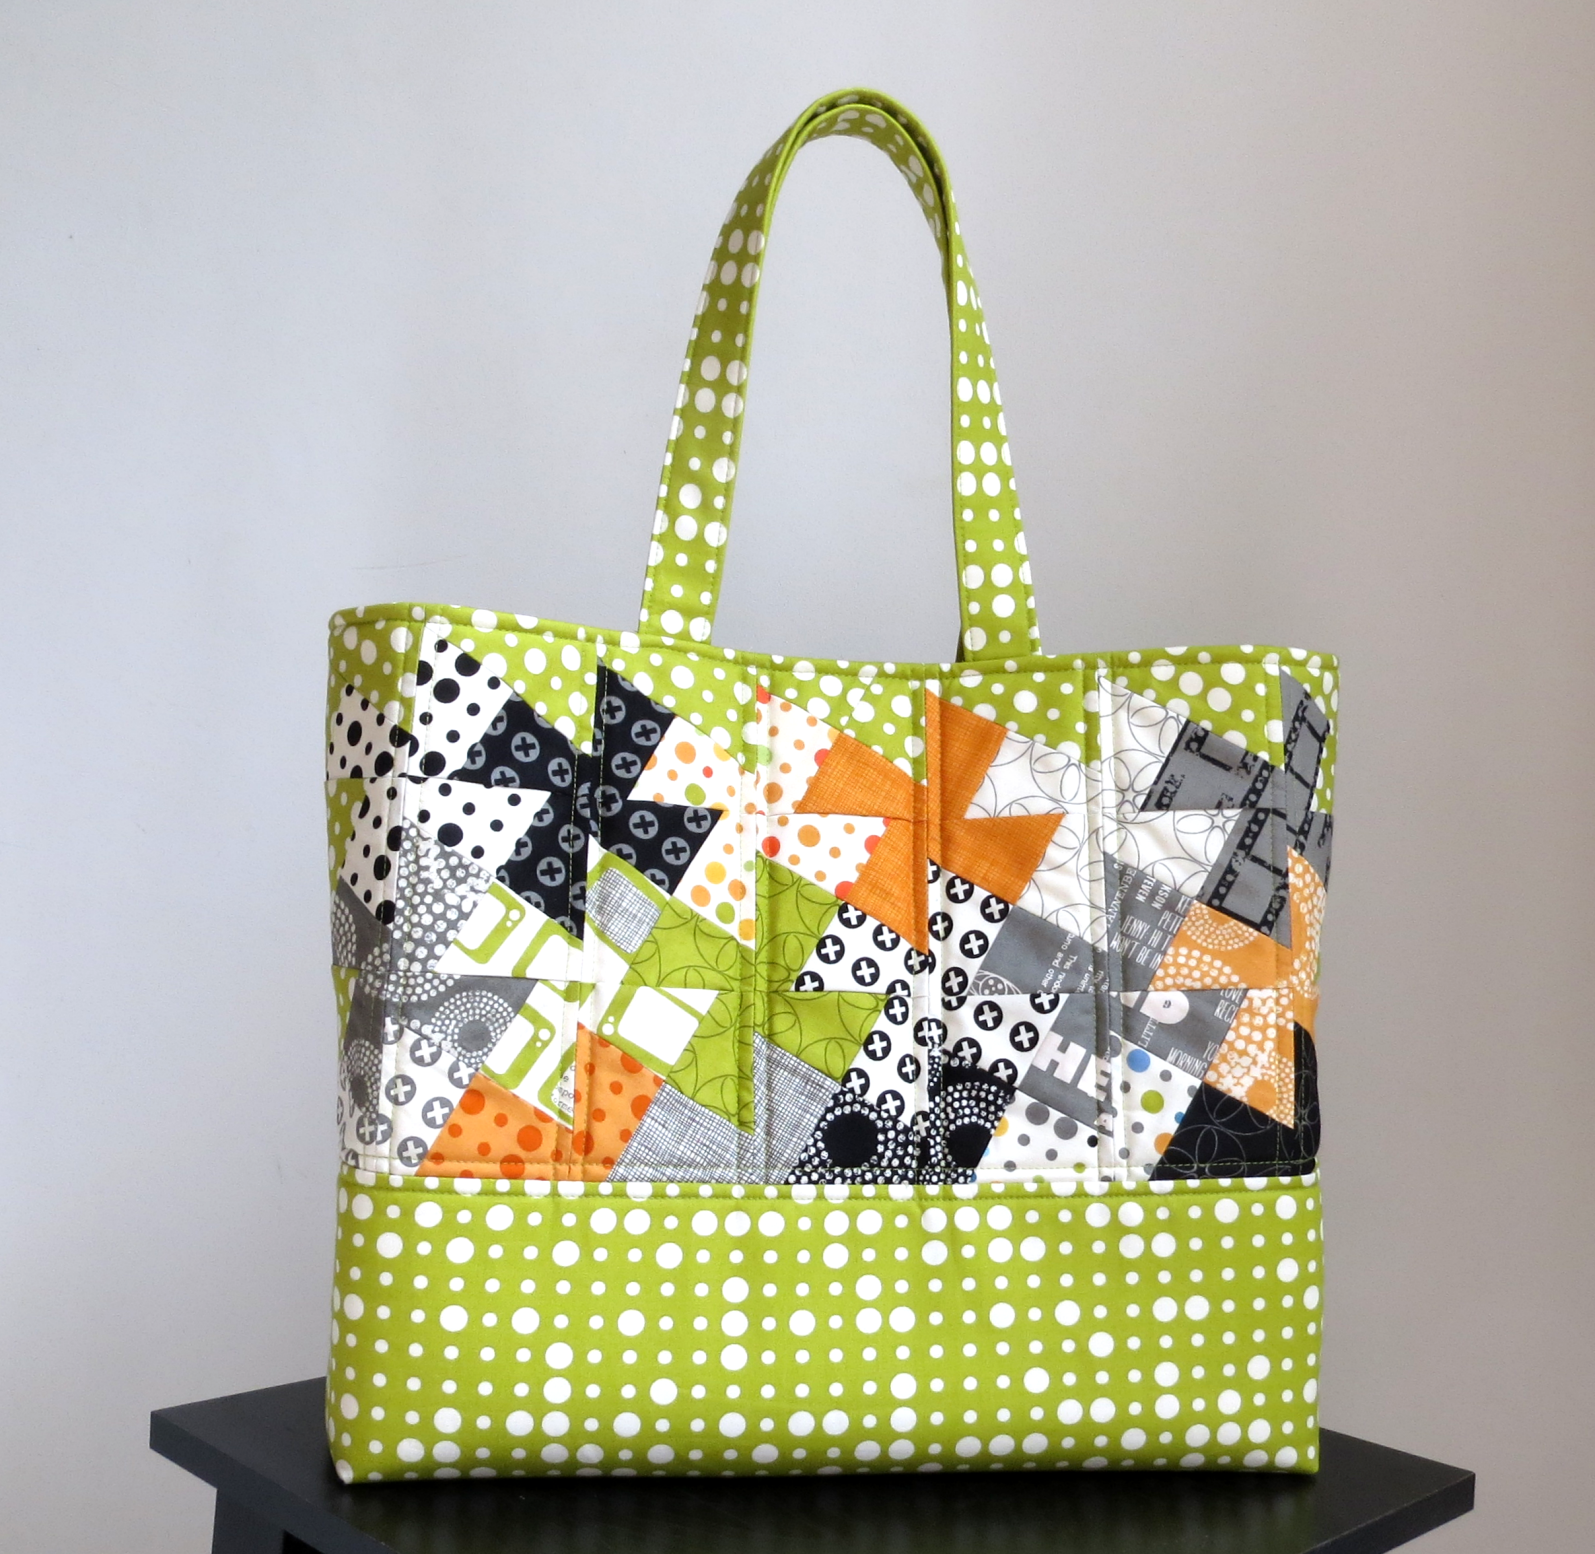 Tote #12 Simply Charming Twister Tote – Around the Bobbin